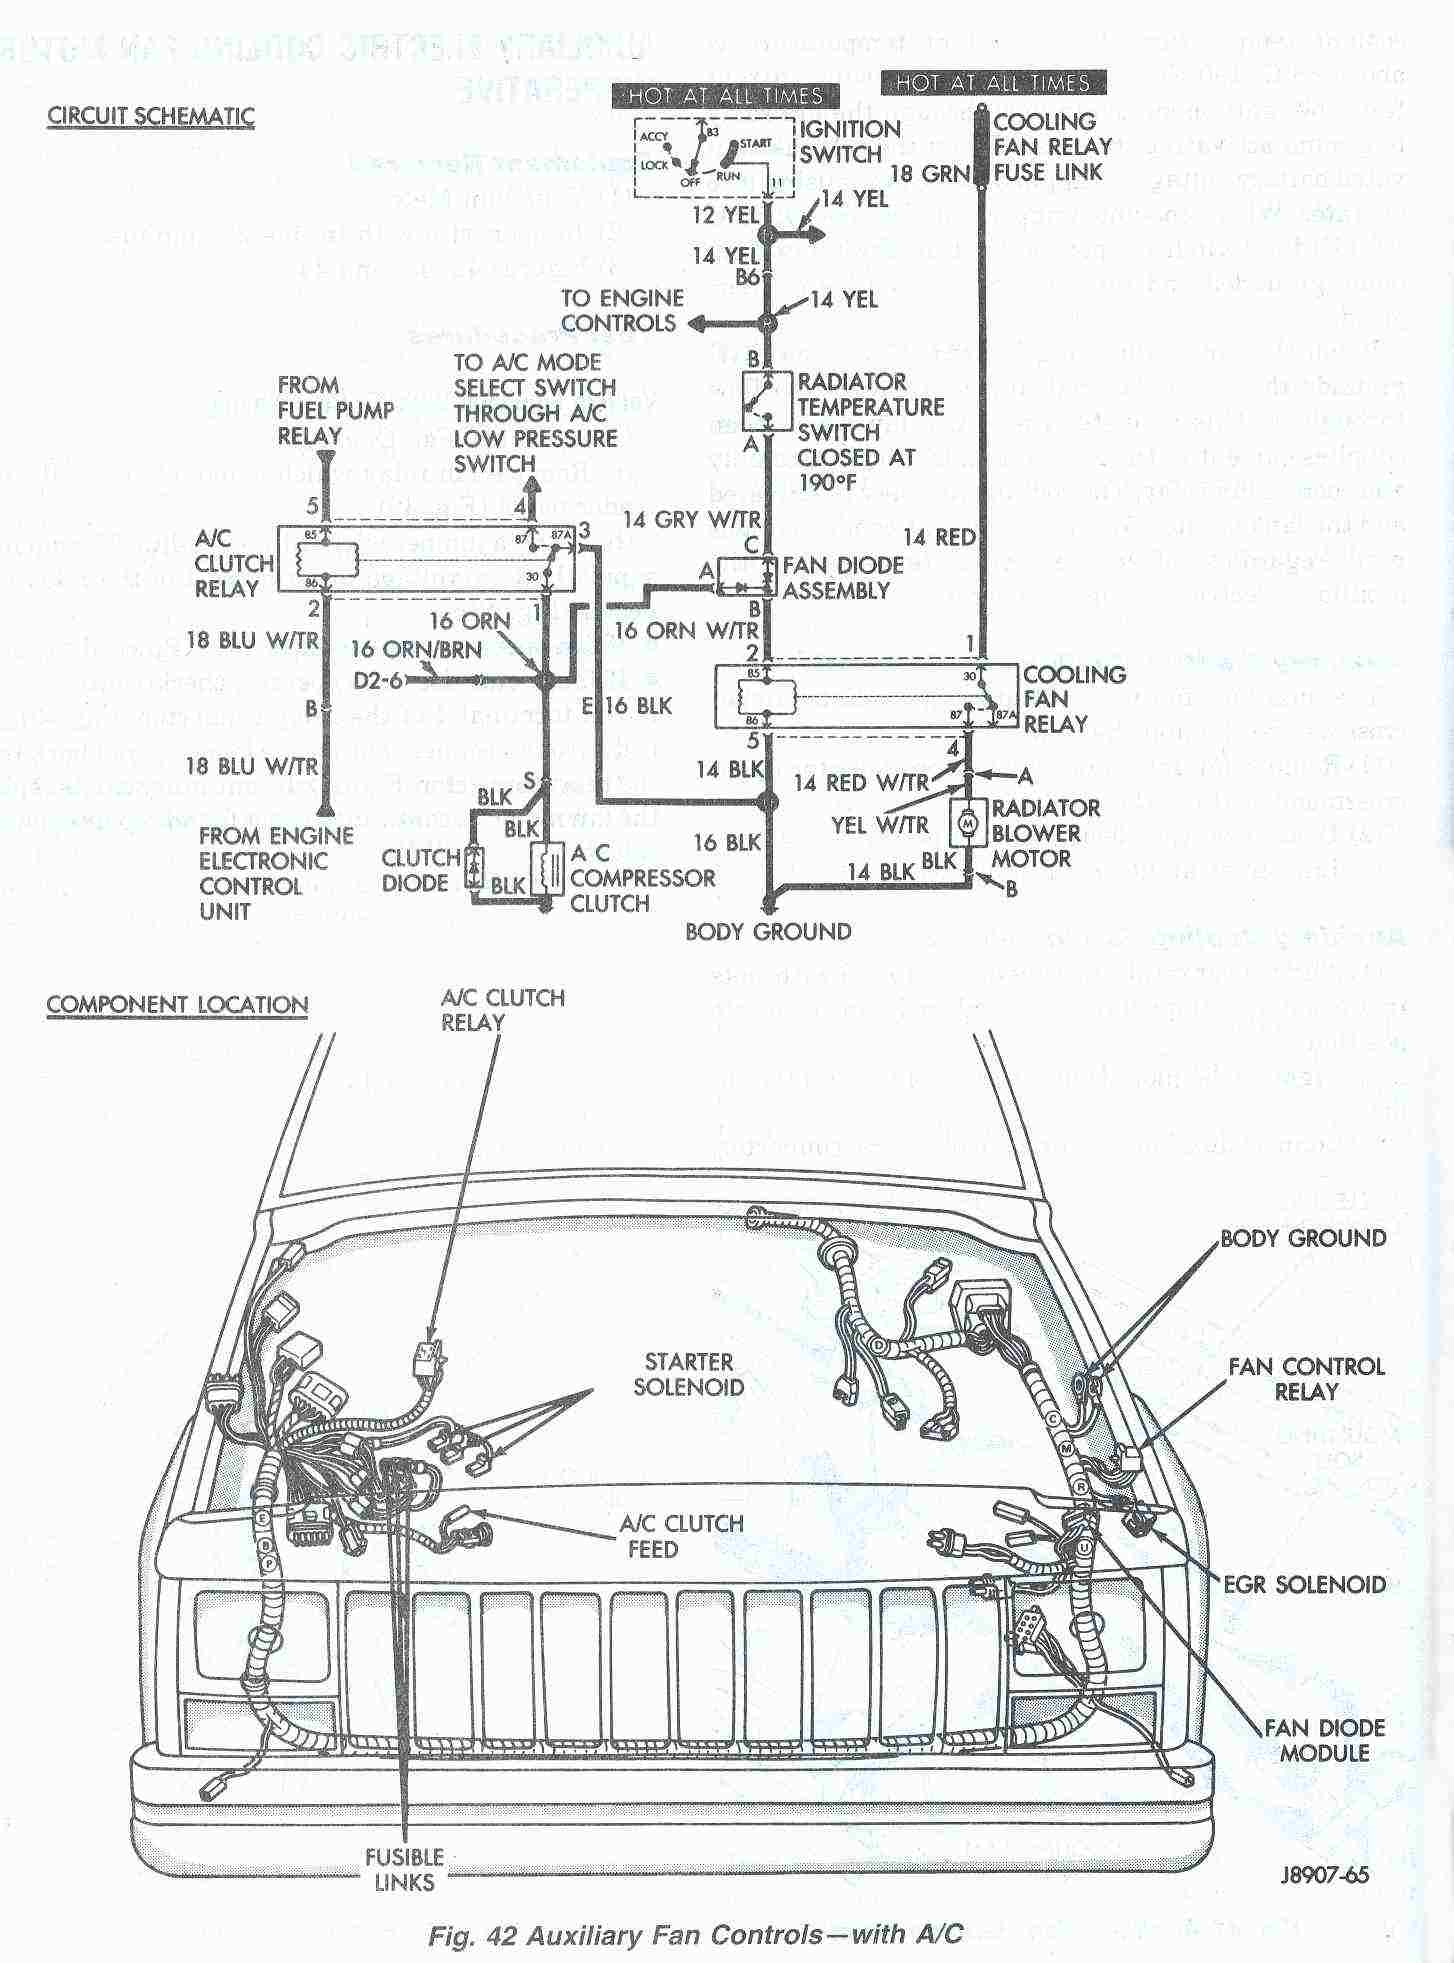 mj wiring diagram schematics and wiring diagrams jeep patriot stereo wiring diagram diagrams and schematics